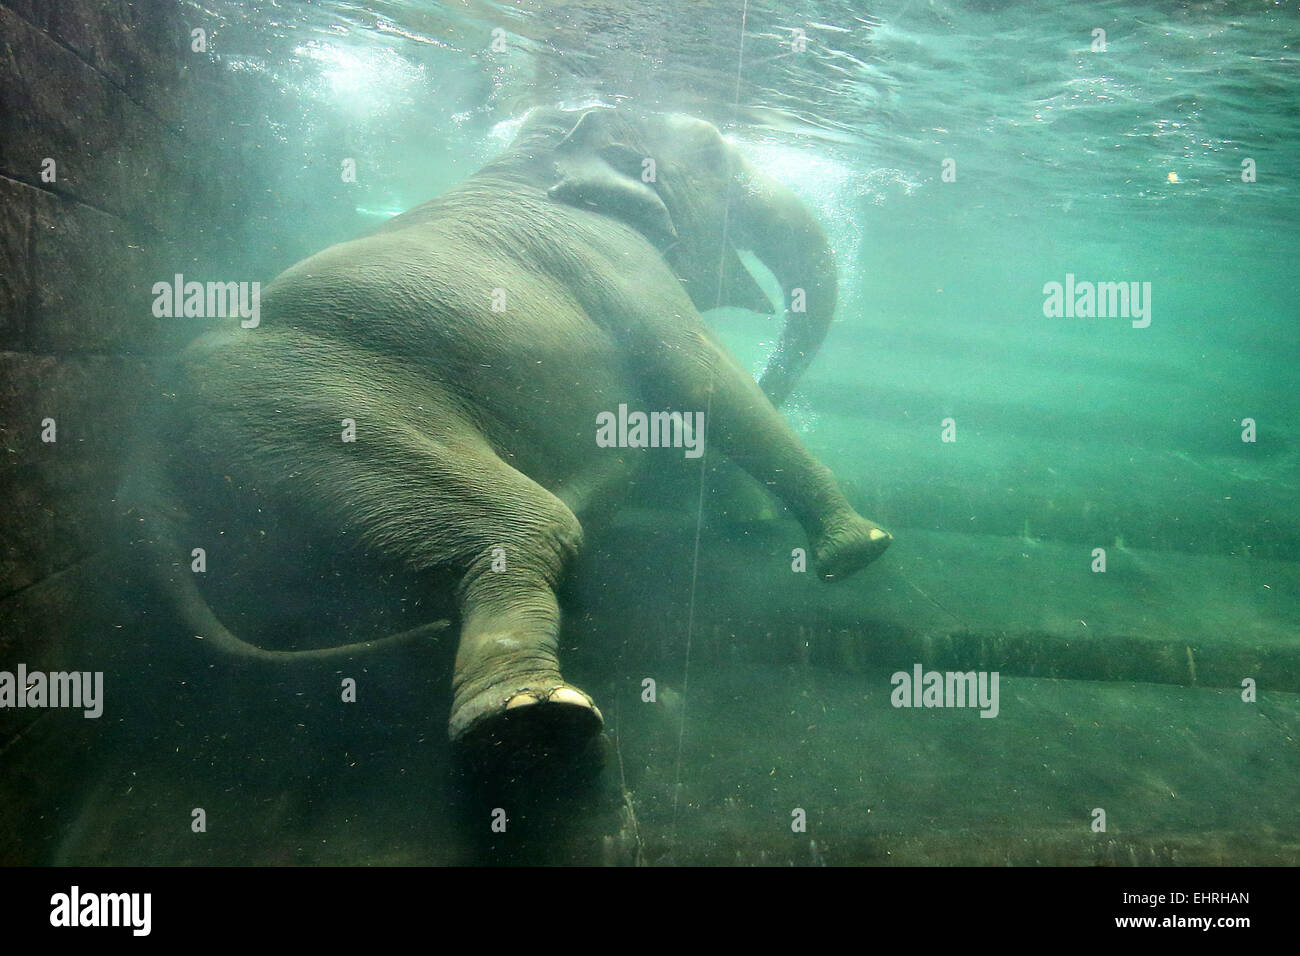 Pregnant cow stock photos pregnant cow stock images alamy - Swimming pool leipzig ...